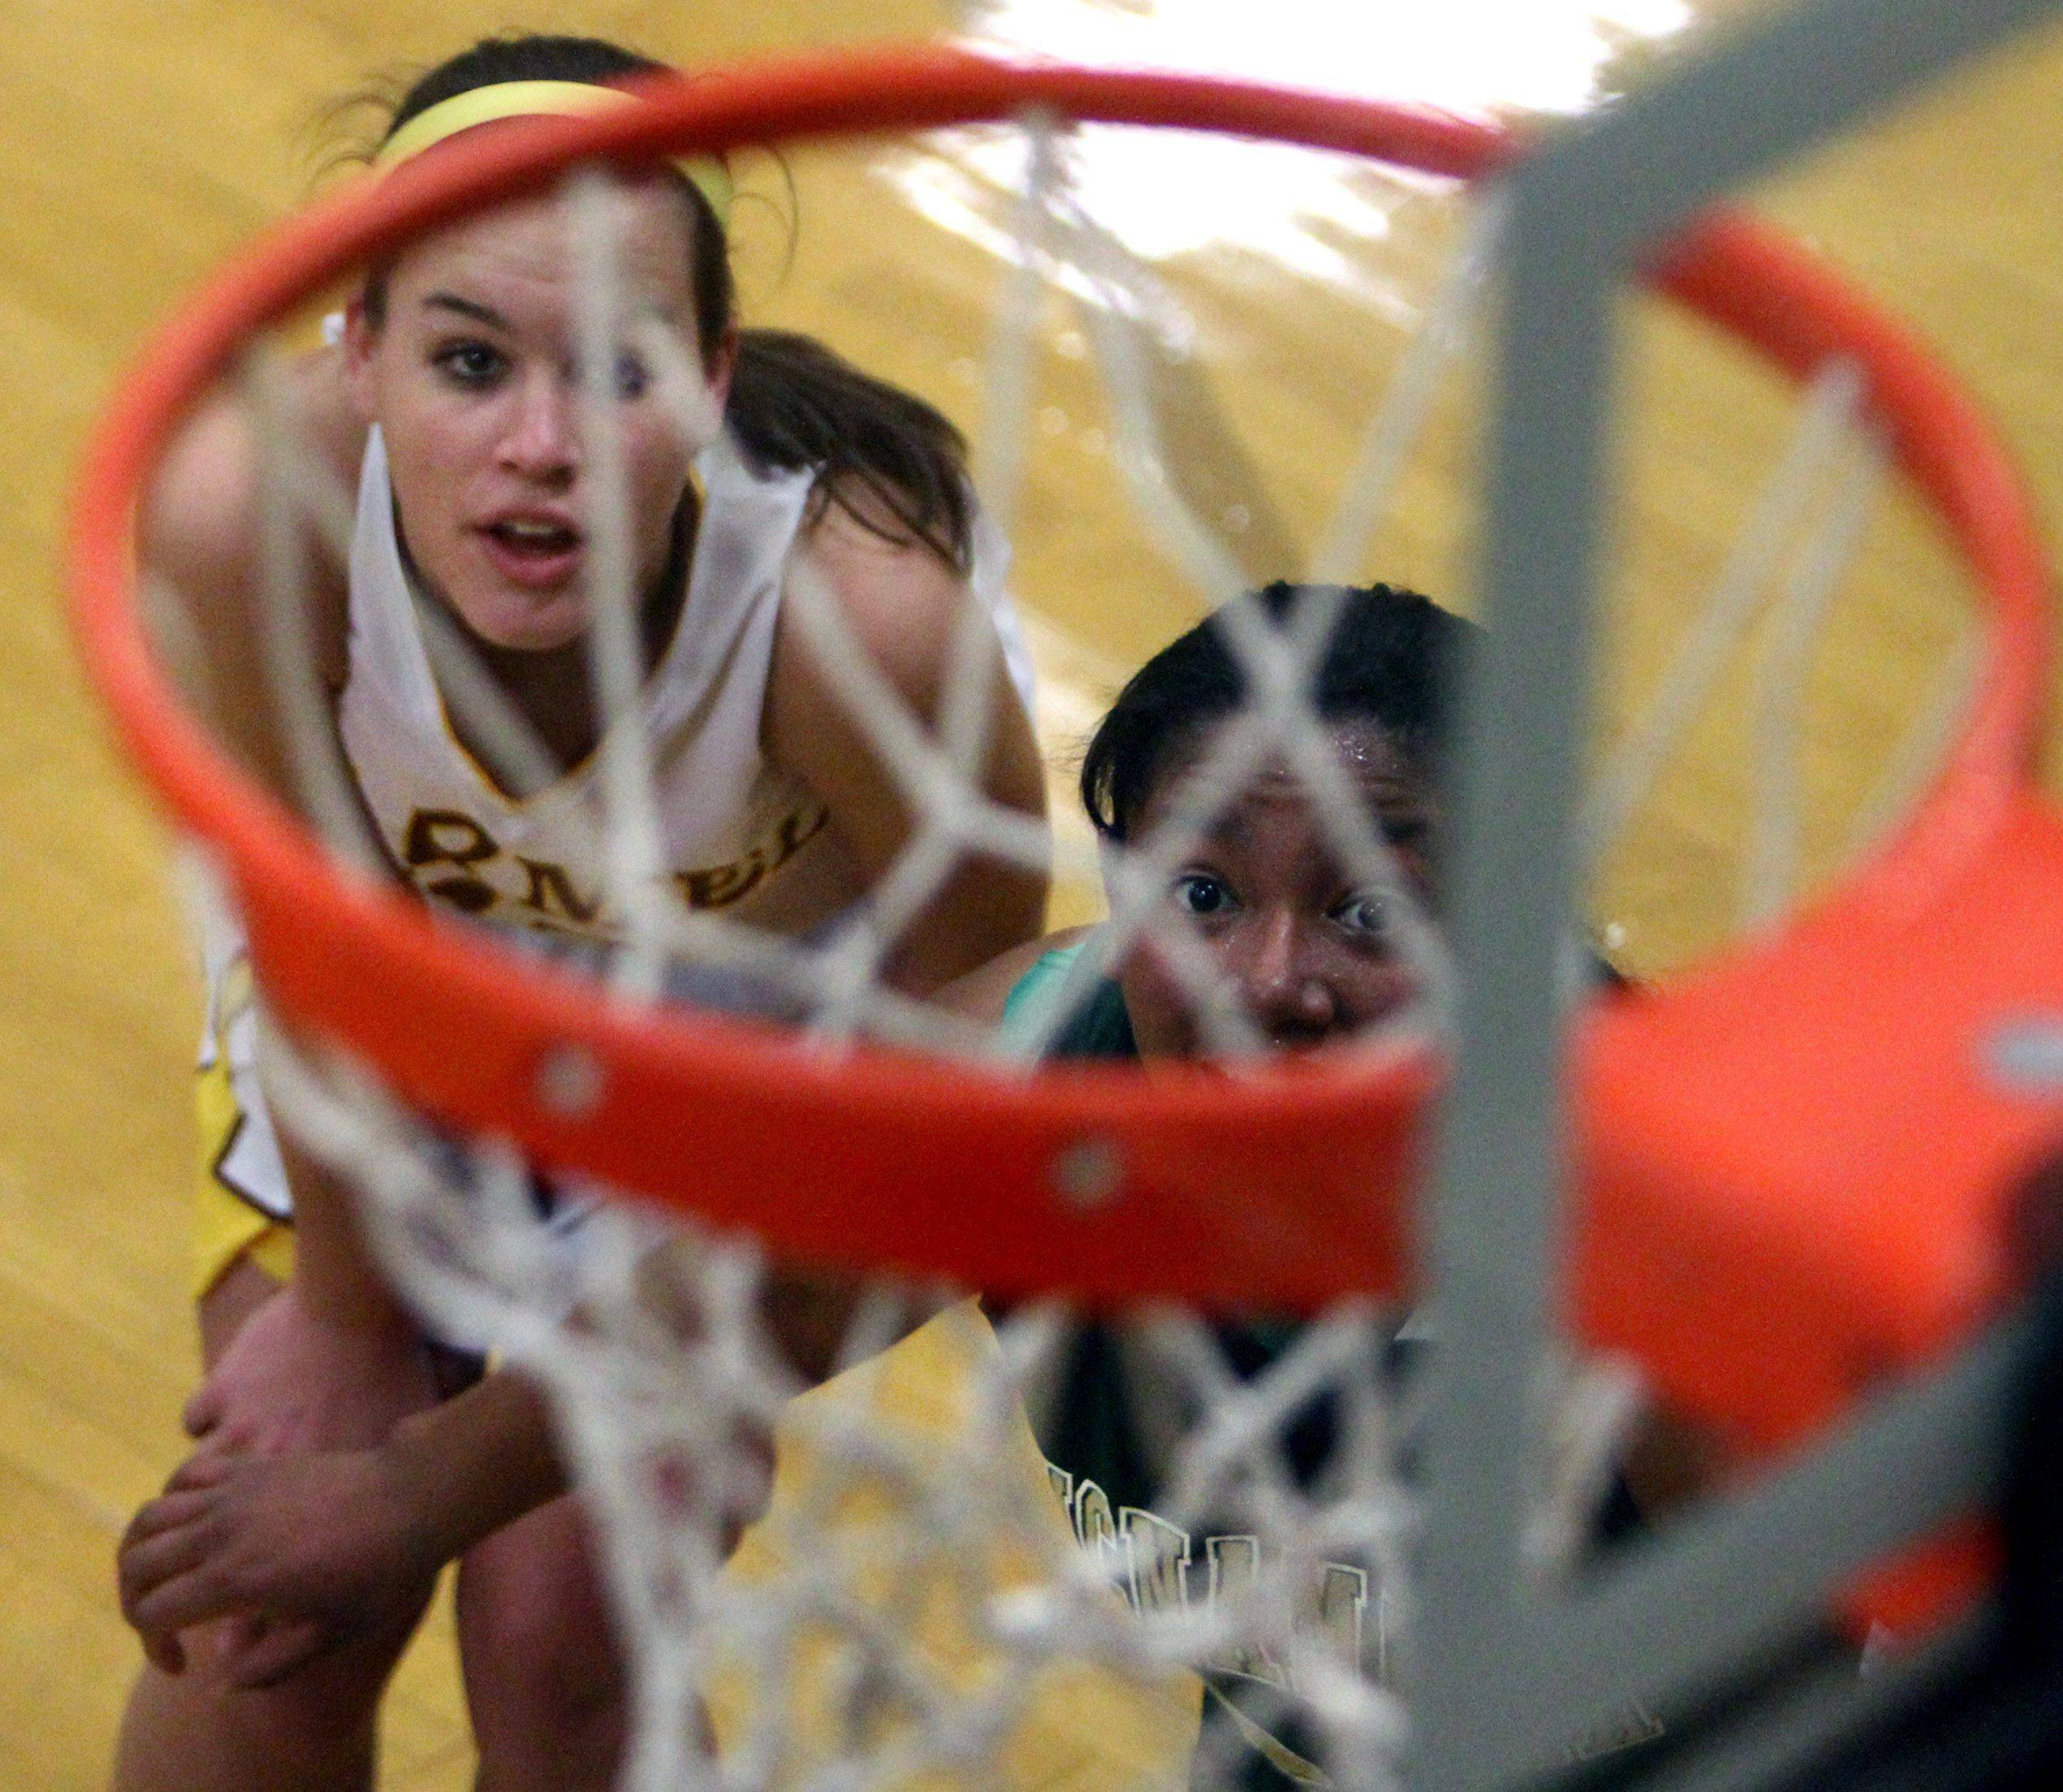 George LeClaire/gleclaire@dailyherald.com Carmel's Kaitlyn Lynch eyes the net during a free-throw shot with Bishop McNamara defender Erika Tatum in Mundelein on Saturday, December 11.